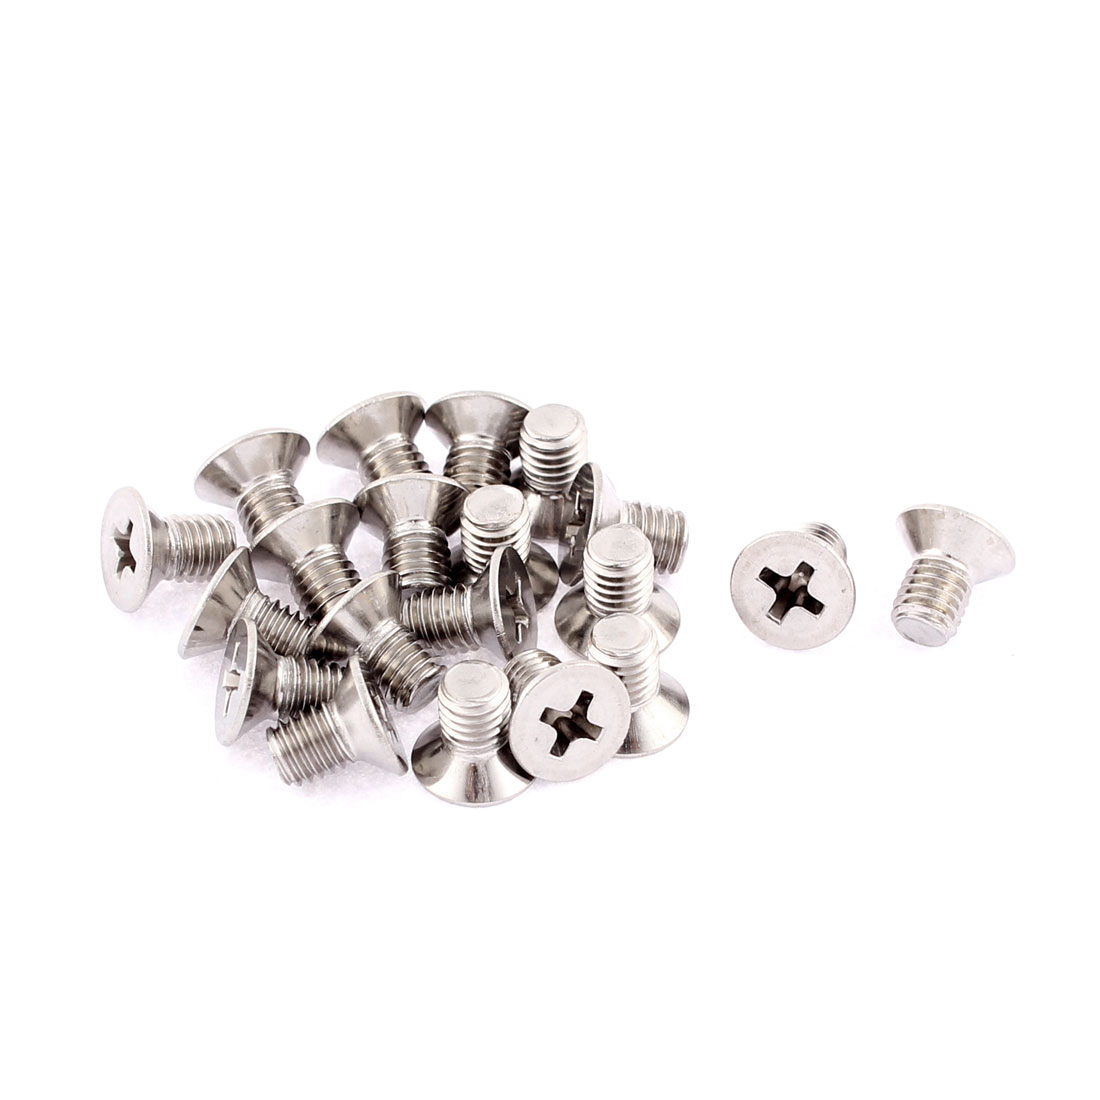 M5 x 8mm Phillips Flat Head Countersunk Bolts Machine Screws 20 Pcs